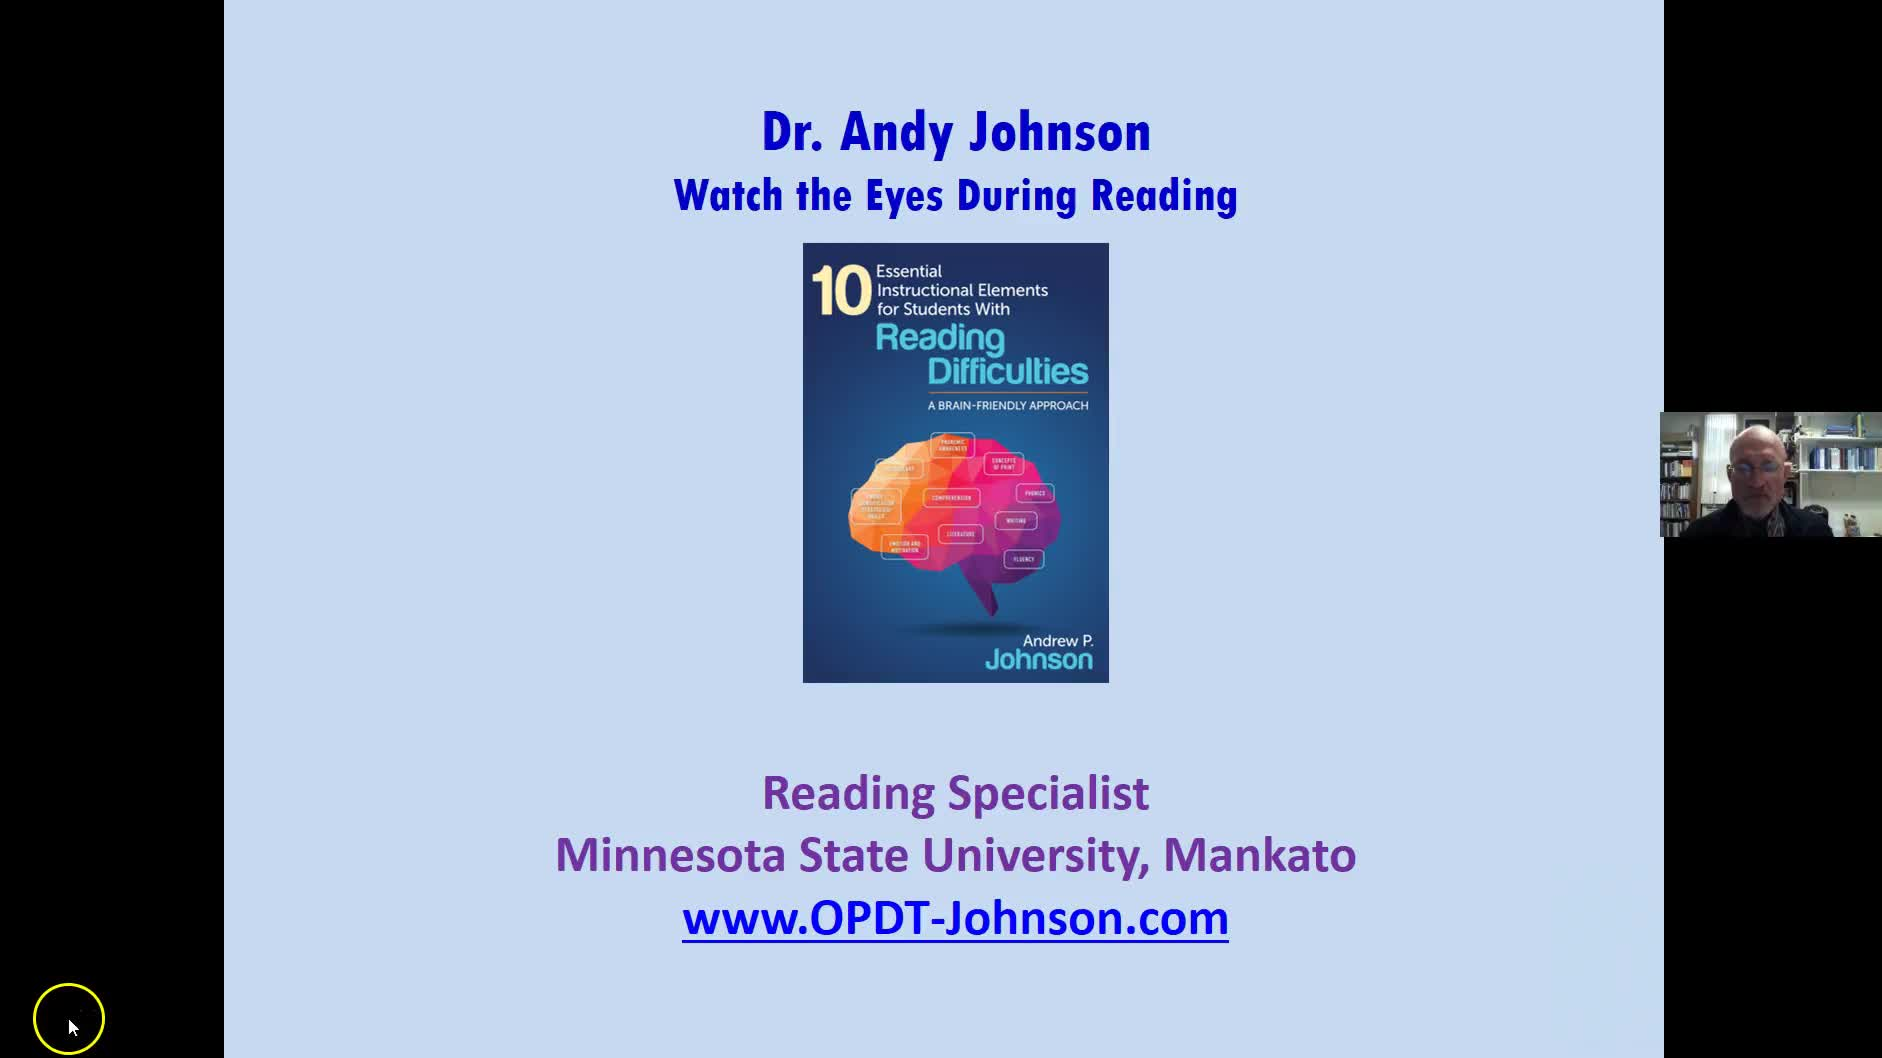 DATA-BASED DECISION-MAKING: WATCH THE EYES OF STRUGGLING READERS